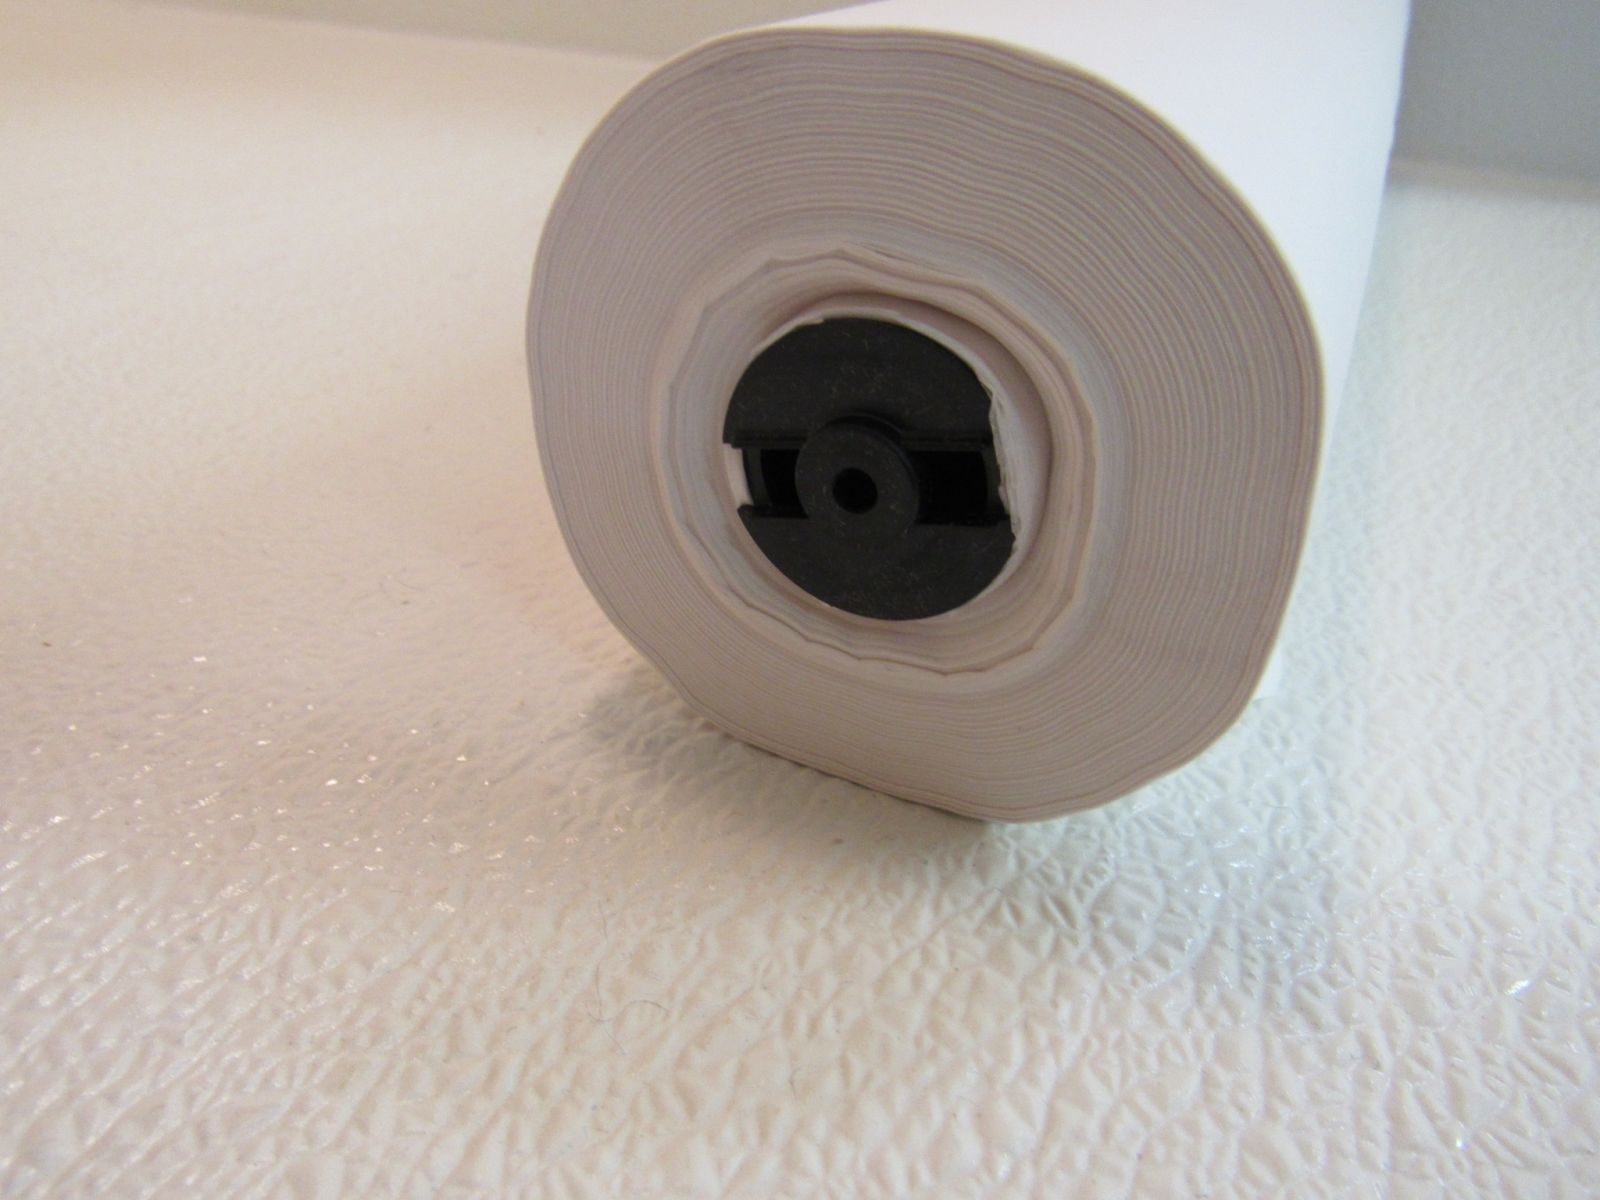 Rochester Midland Rolldor Toilet Seat Covers 20 Rolls 5000 Covers 25131373